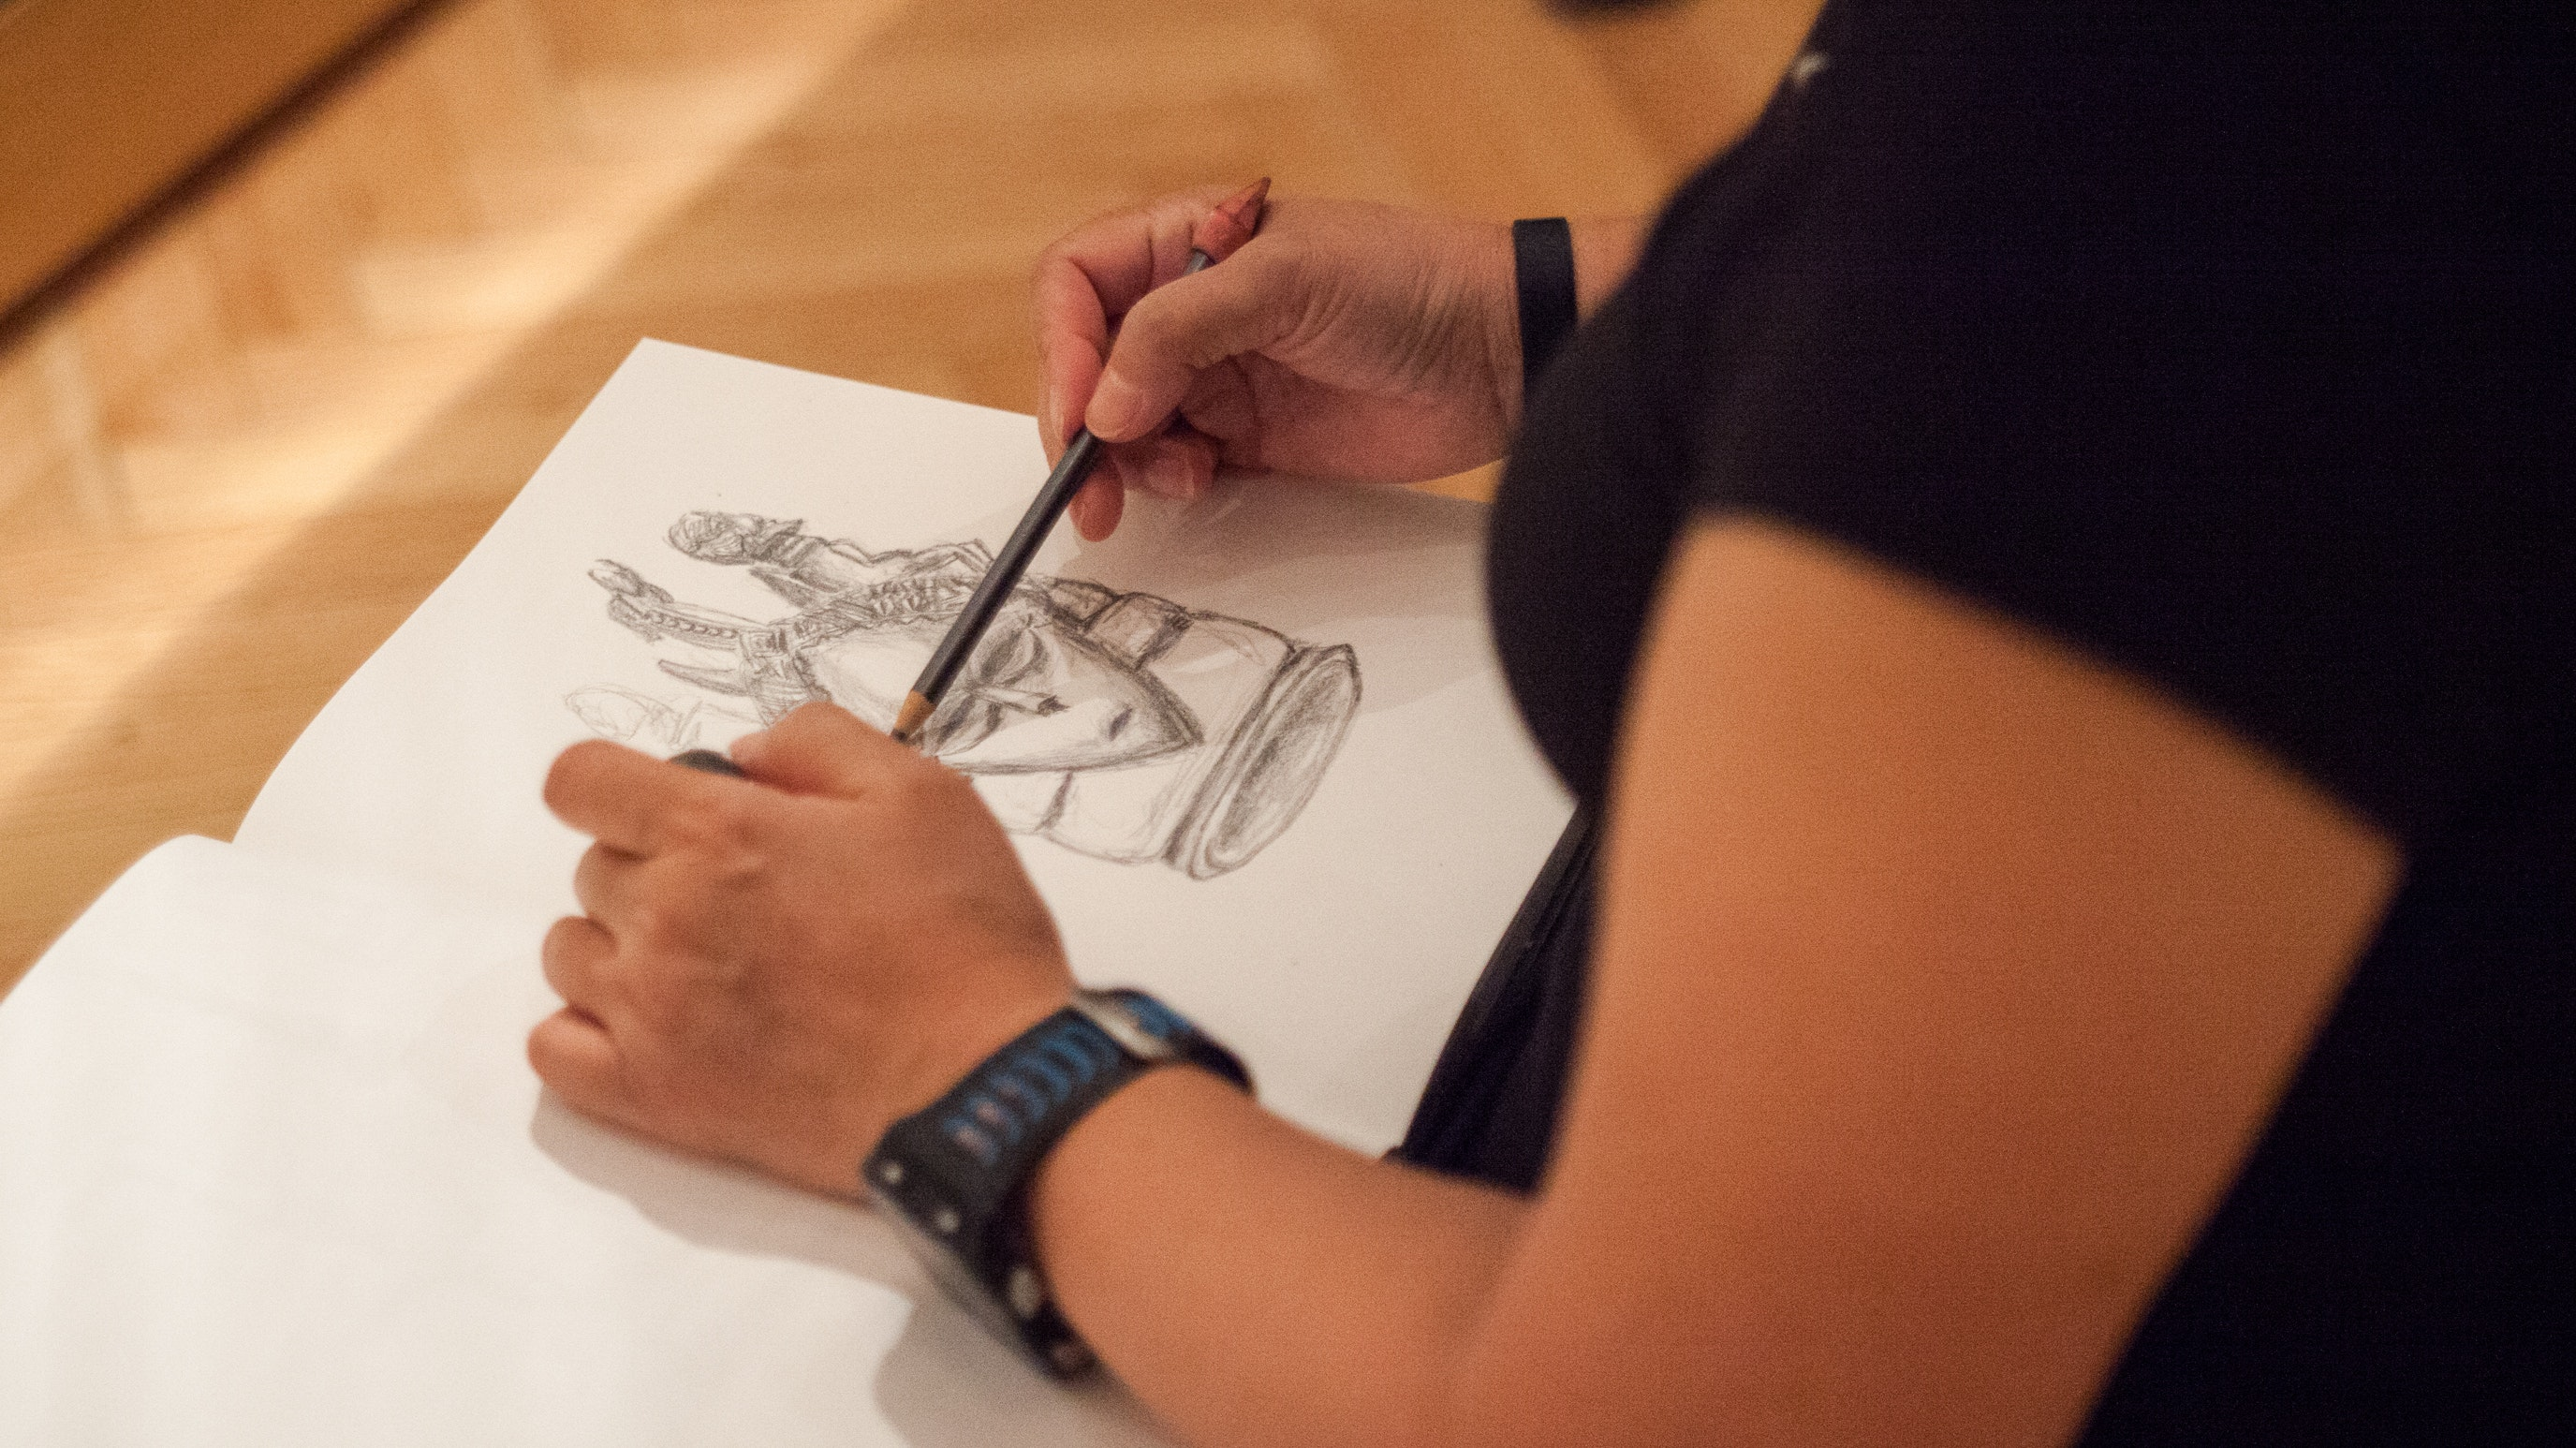 Person drawing an object from the collection in a sketchbook